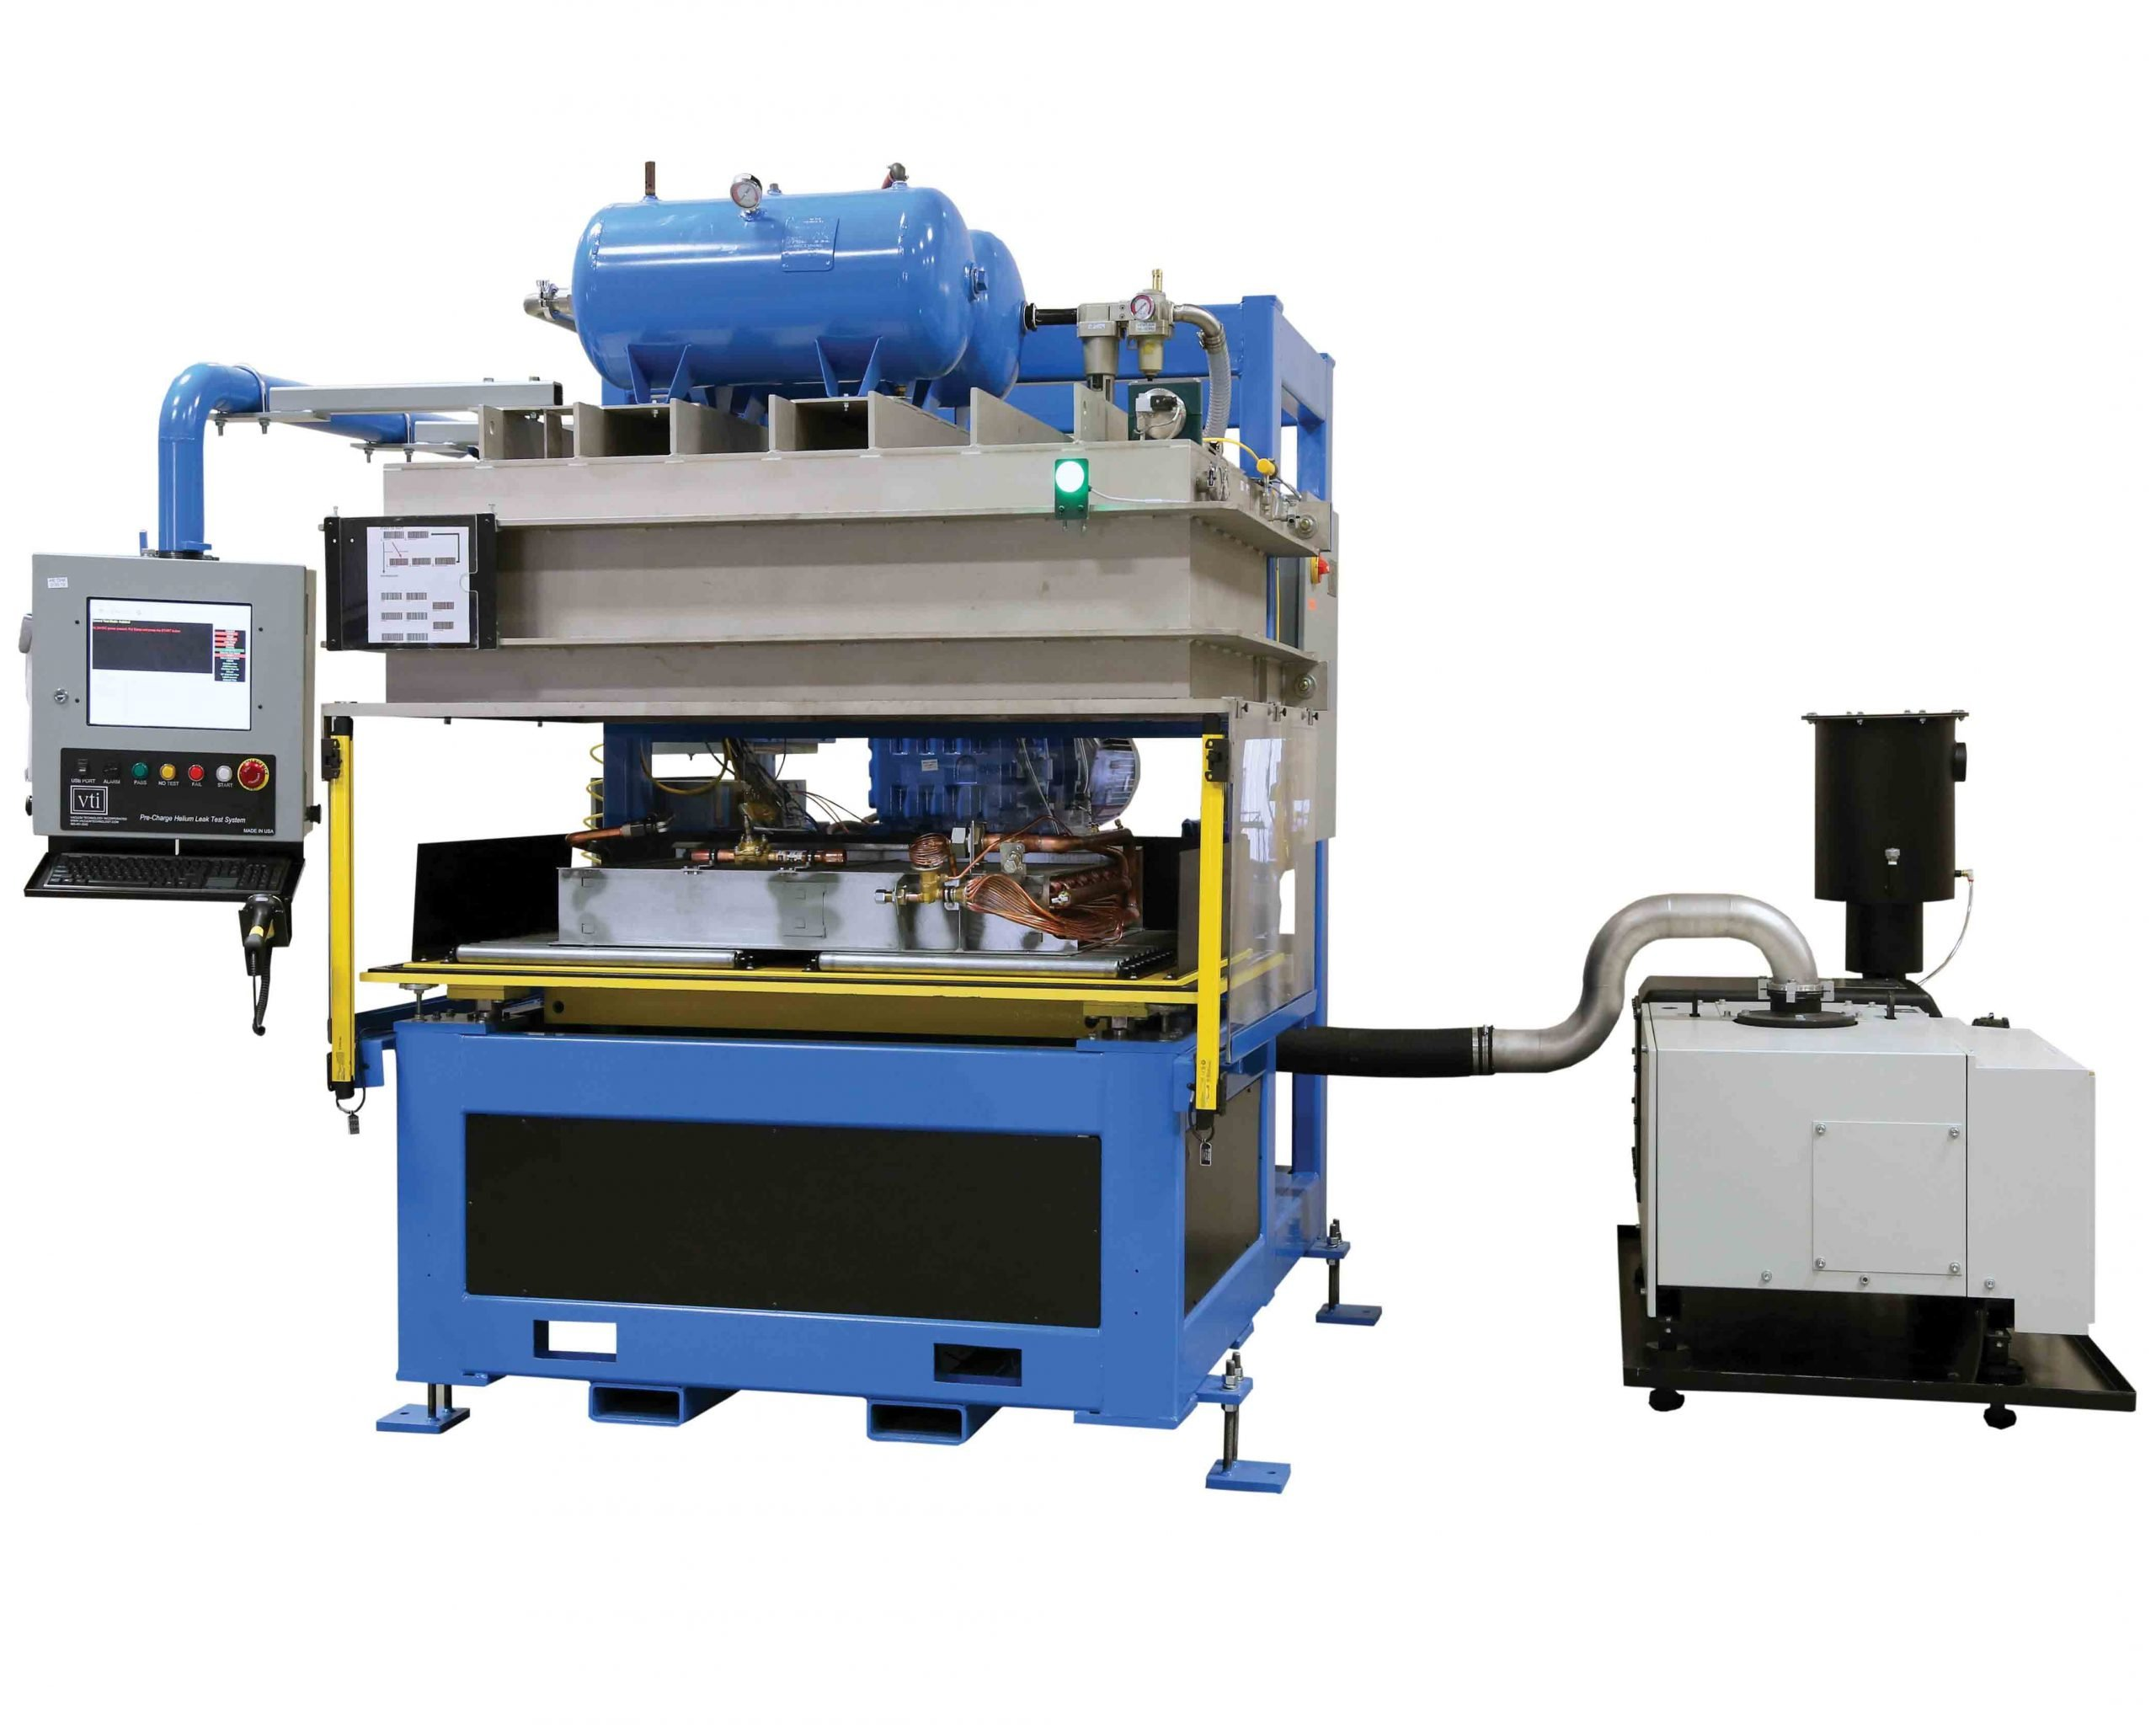 VTI's Cantilevered Bottom-Up Pre-Charged Helium Leak Test System for Medium Size Slab Coils